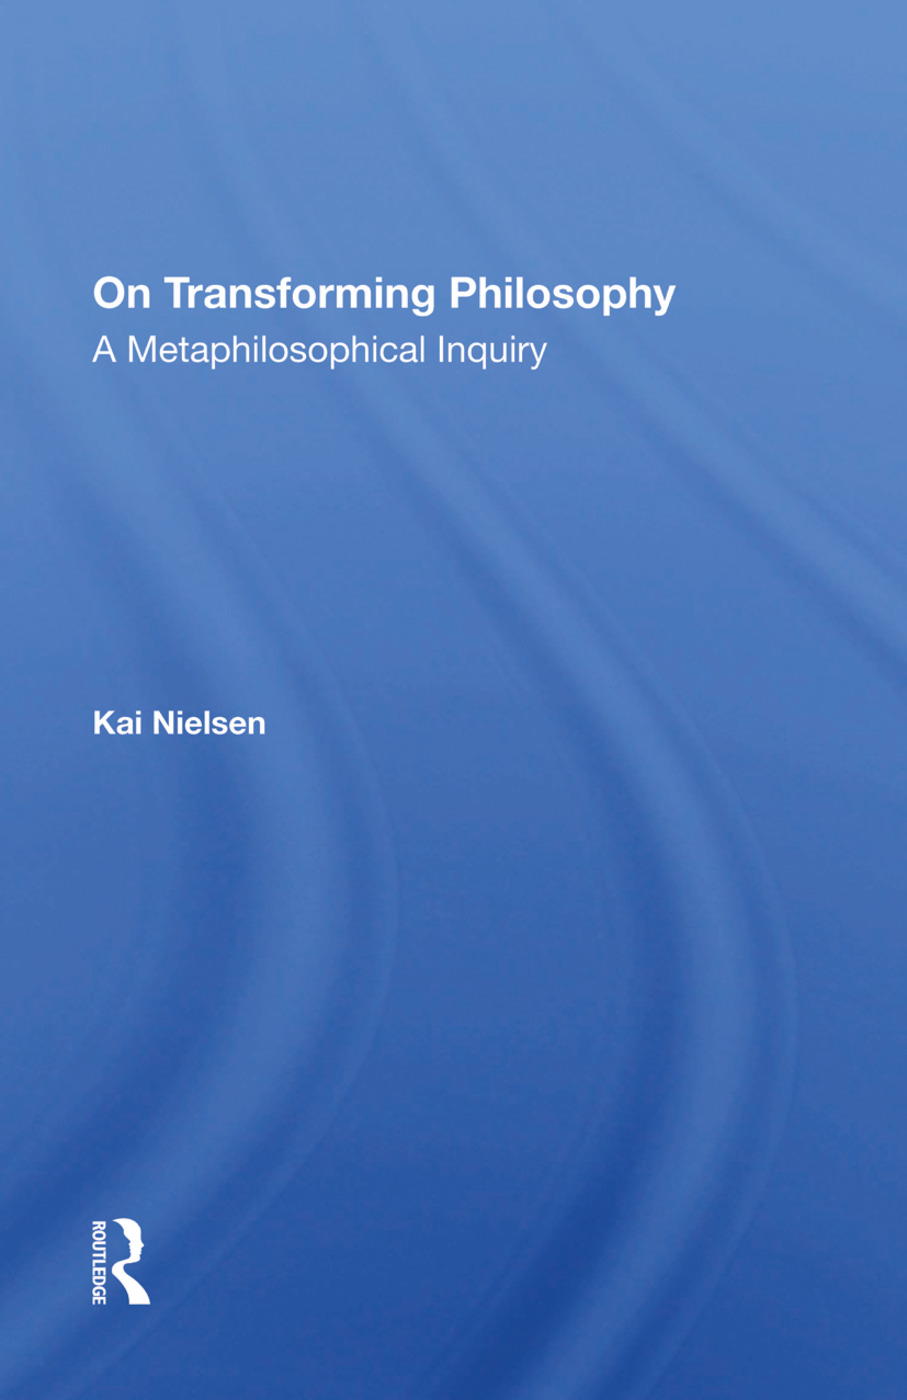 On Transforming Philosophy: A Metaphilosophical Inquiry book cover